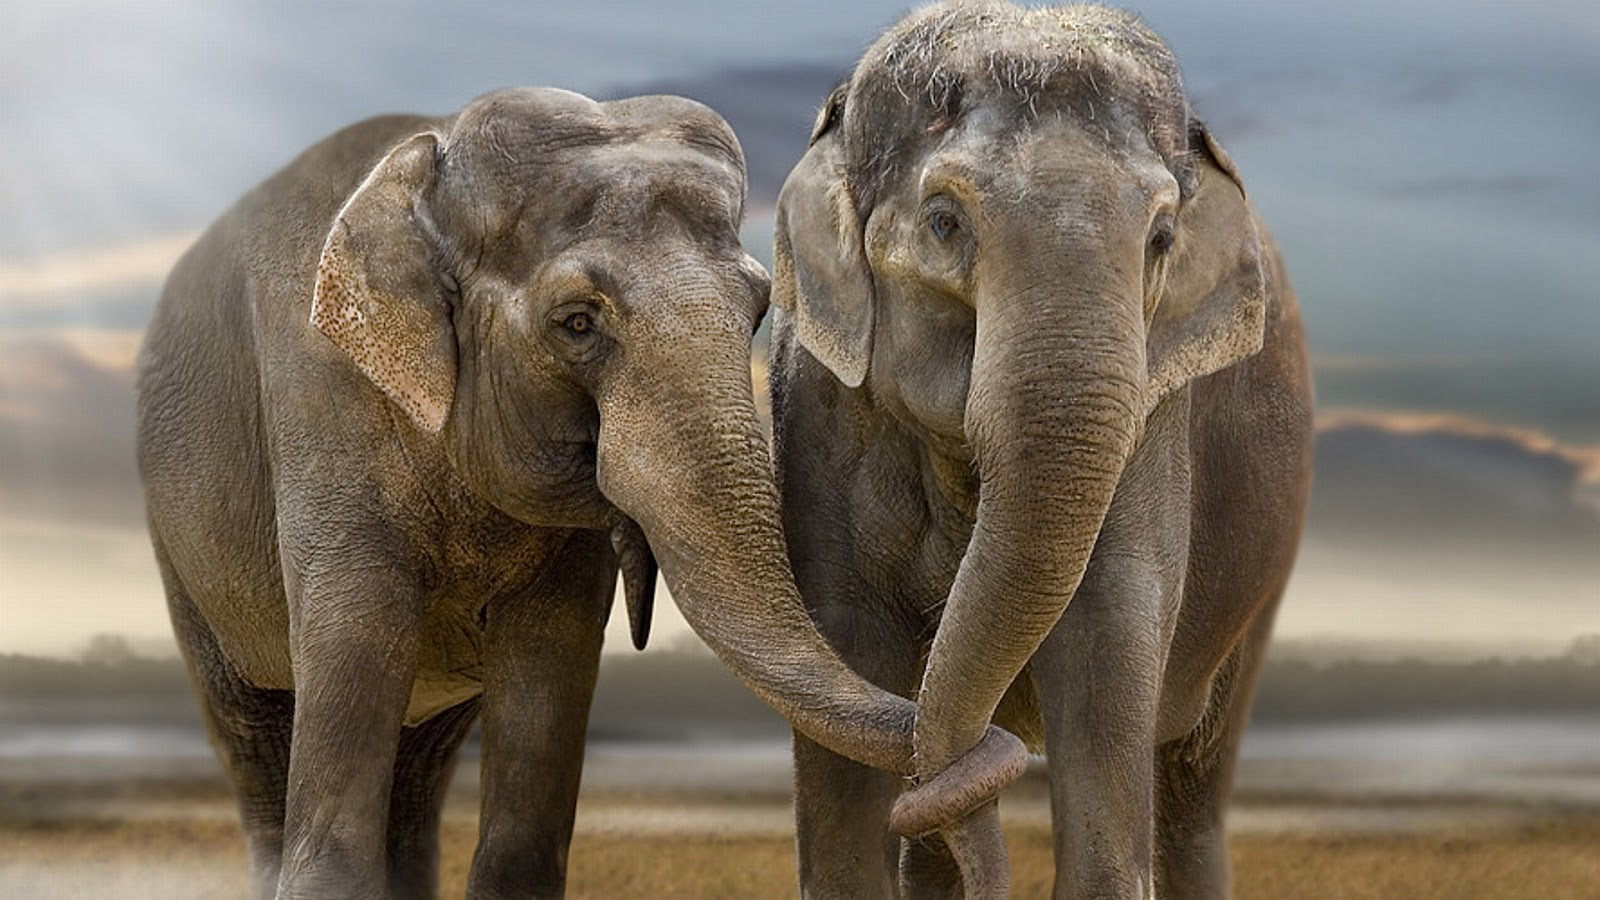 Animals Wallpapers HD: Elephant Wallpapers HD